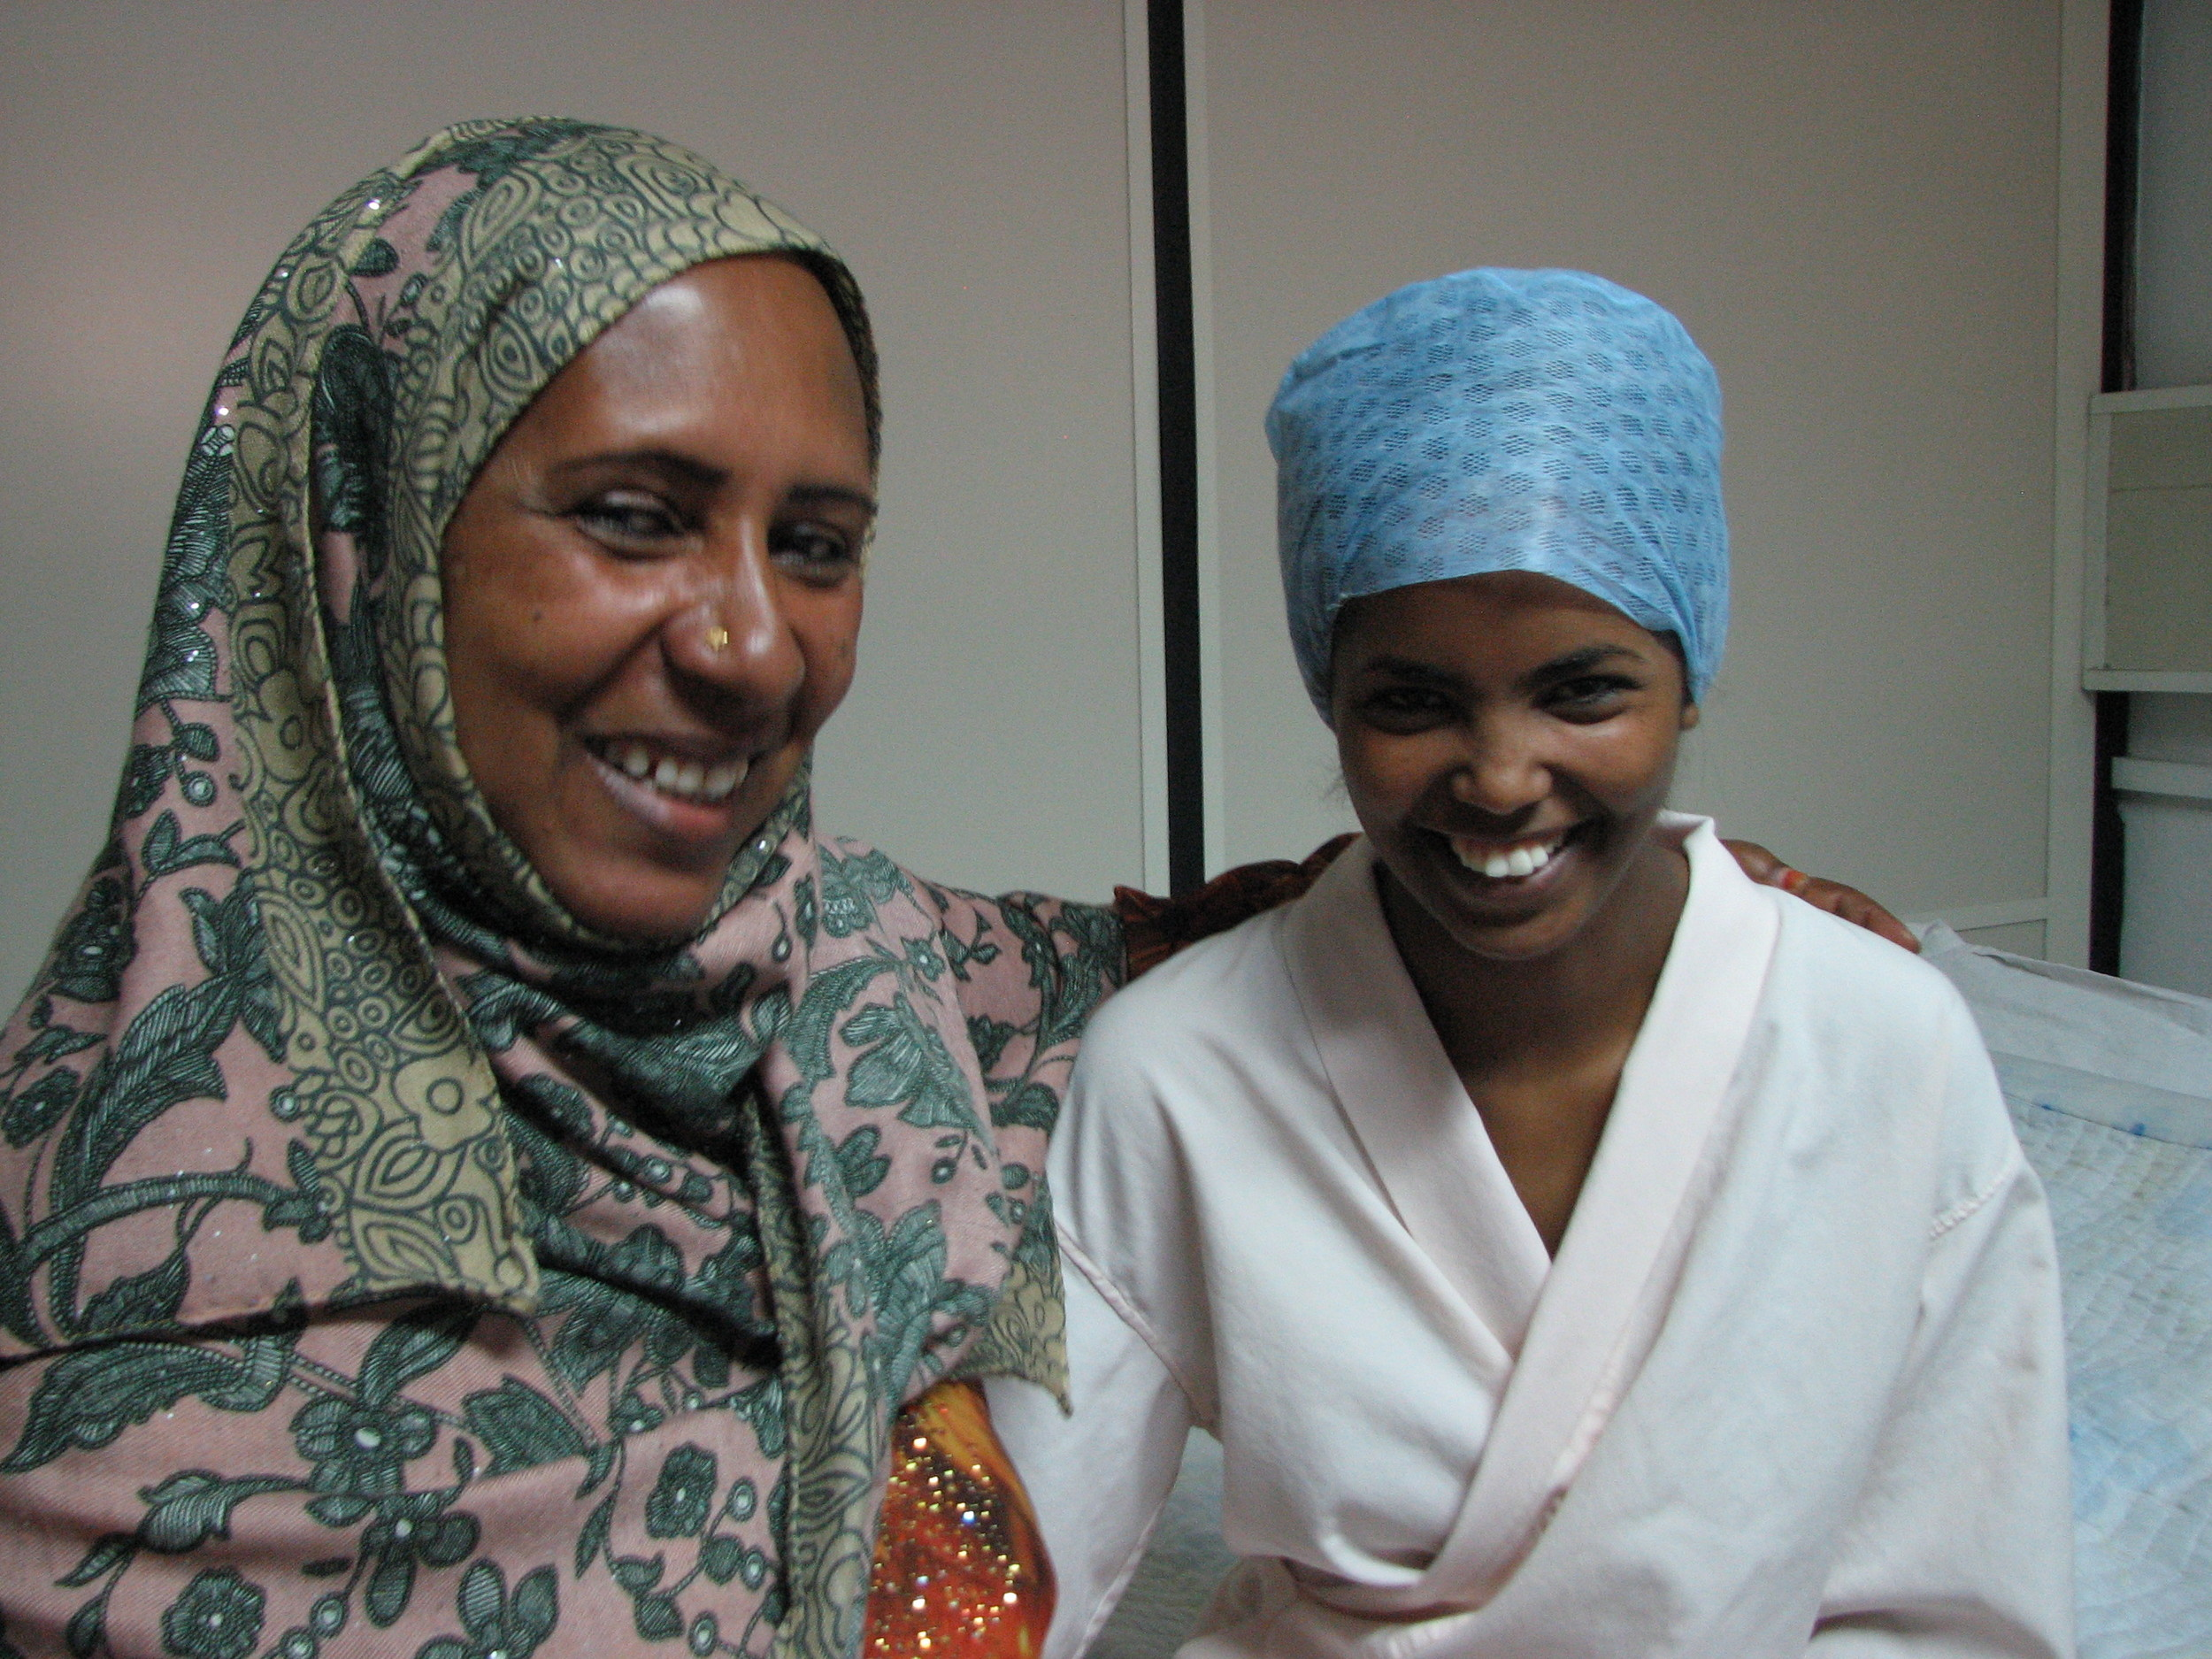 Aziza and her mother after her procedure